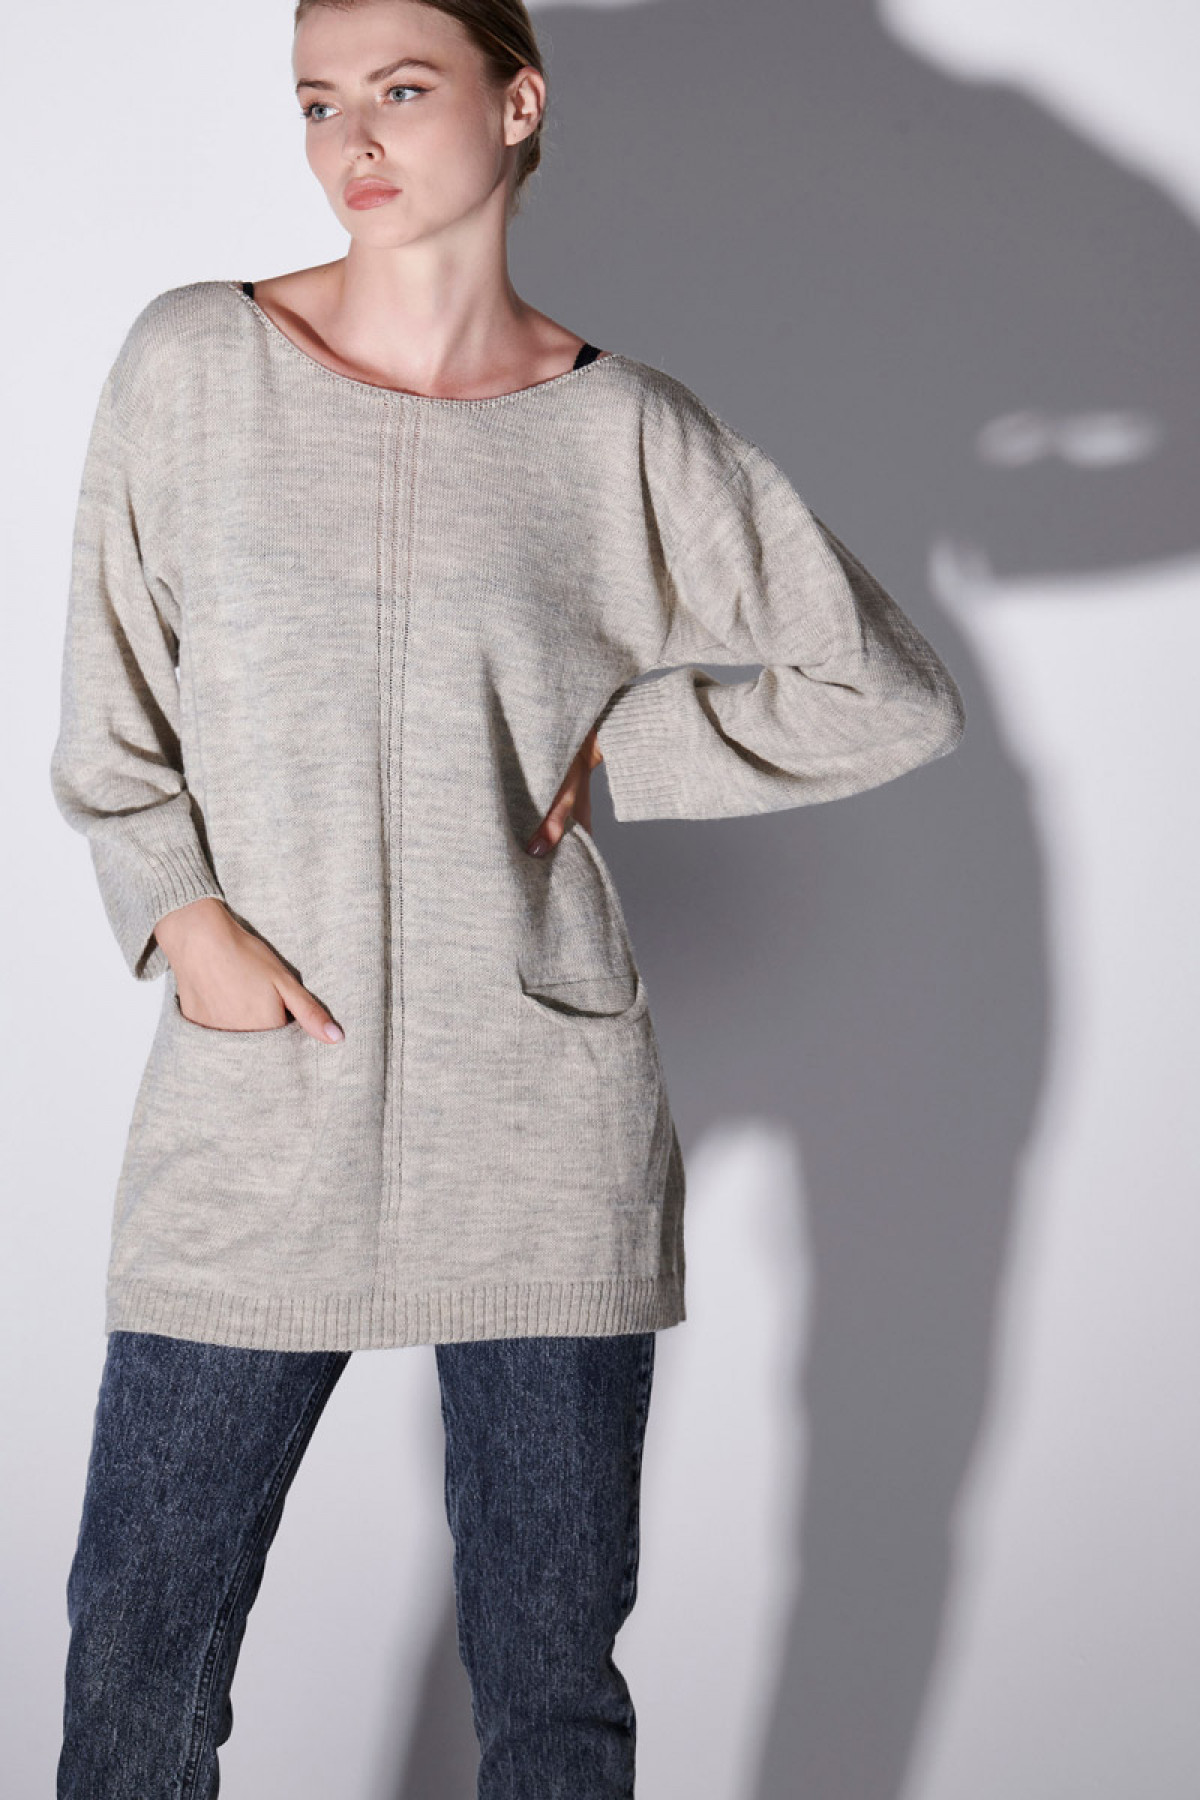 WOOL SWEATER WITH POCKETS IN LIGHT GRAY